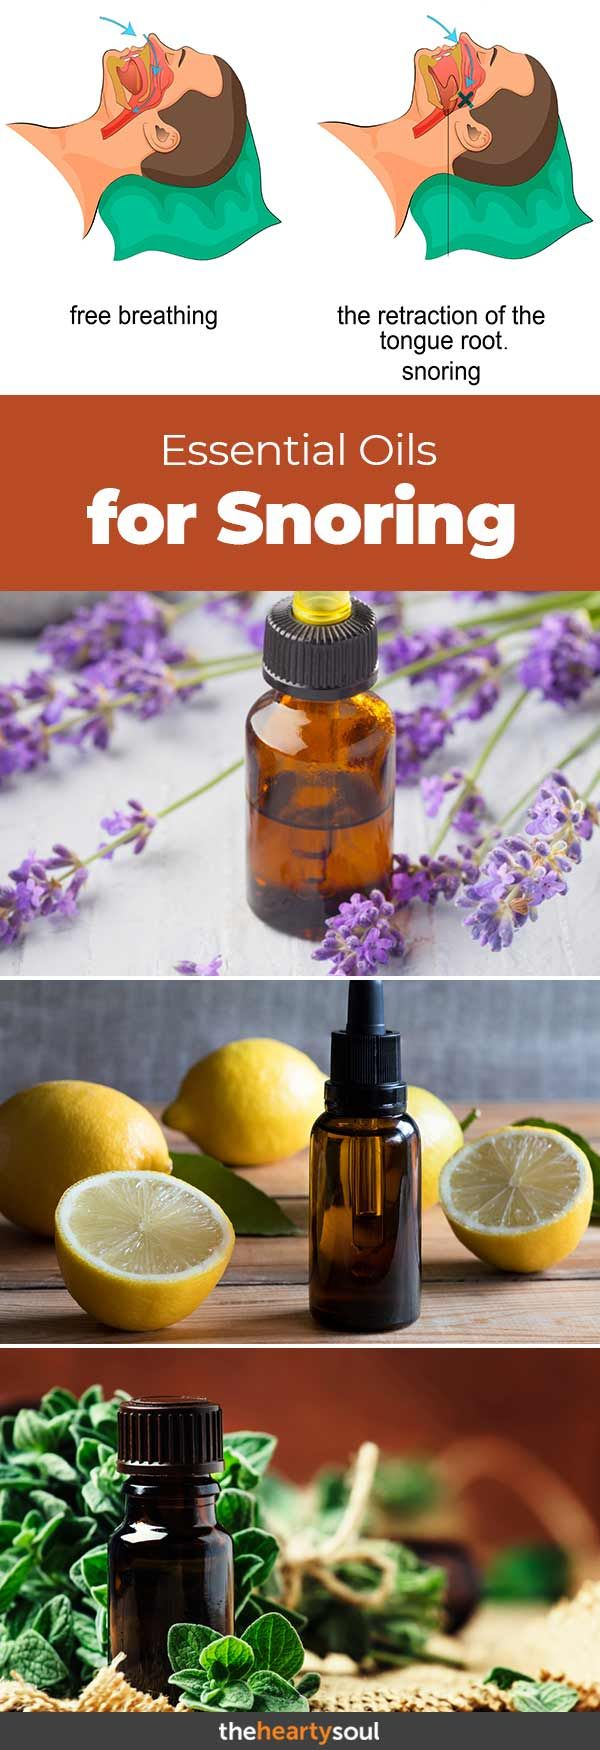 Are you a snorer? Even if you were, we understand no one likes admitting it. Thankfully, we have 3 essential oils for a natural snoring remedy that works!